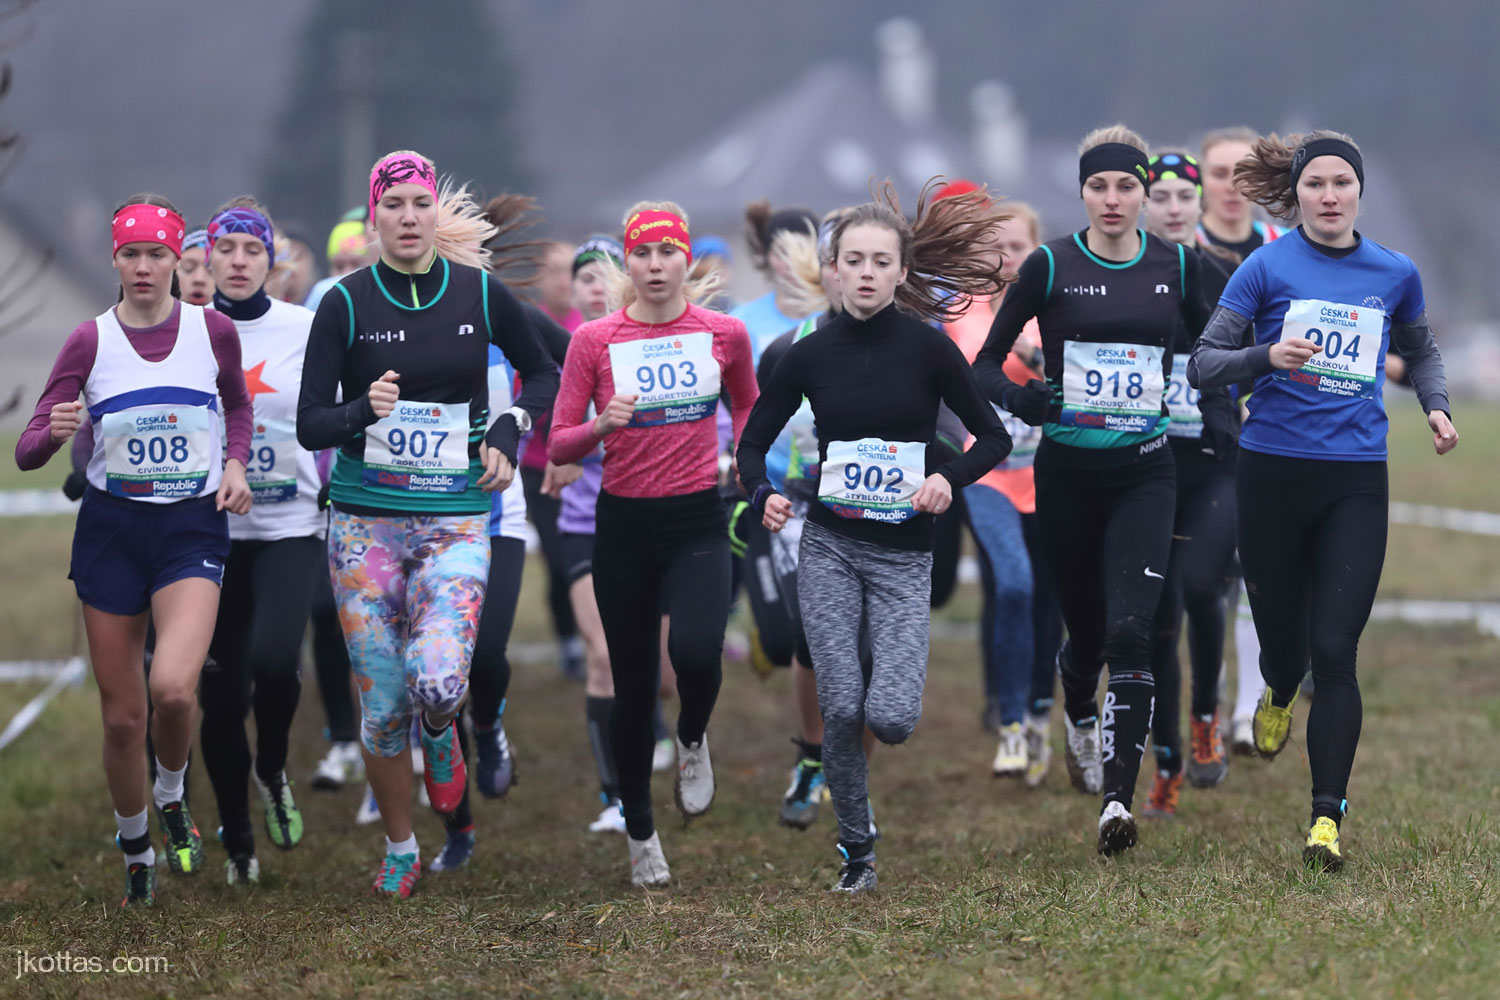 cz-championship-cross-country-dlouhonovice-31